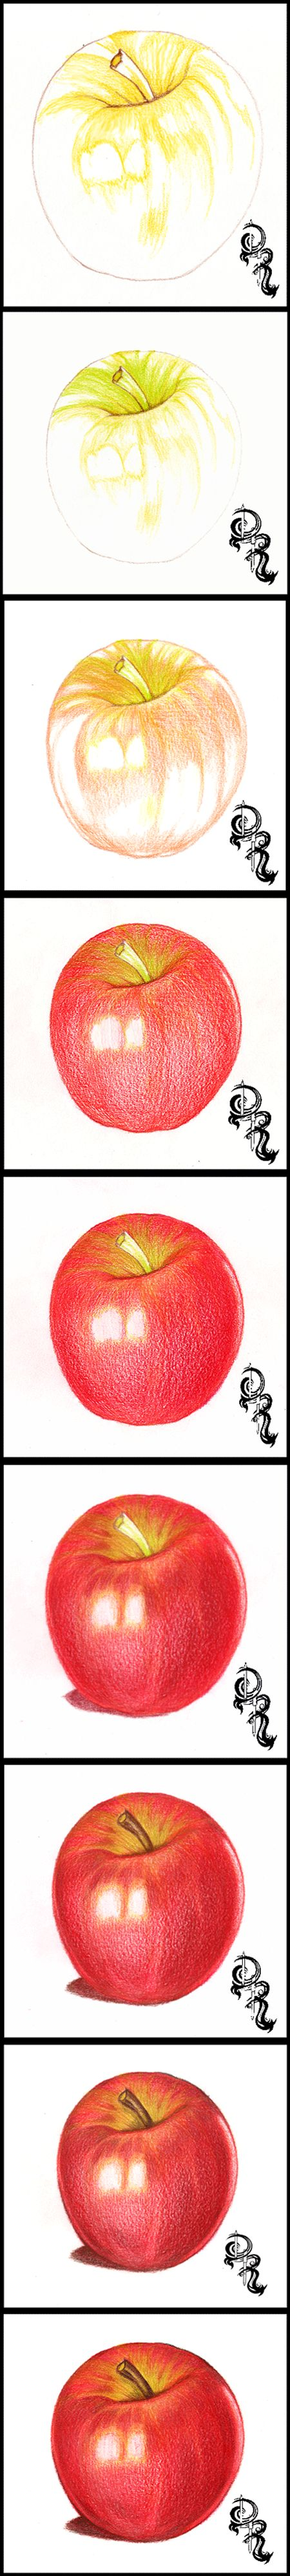 How To Draw An Apple With Colored Pencils A Step By Image Of Pencil Artlesson Derrick Rathgeber